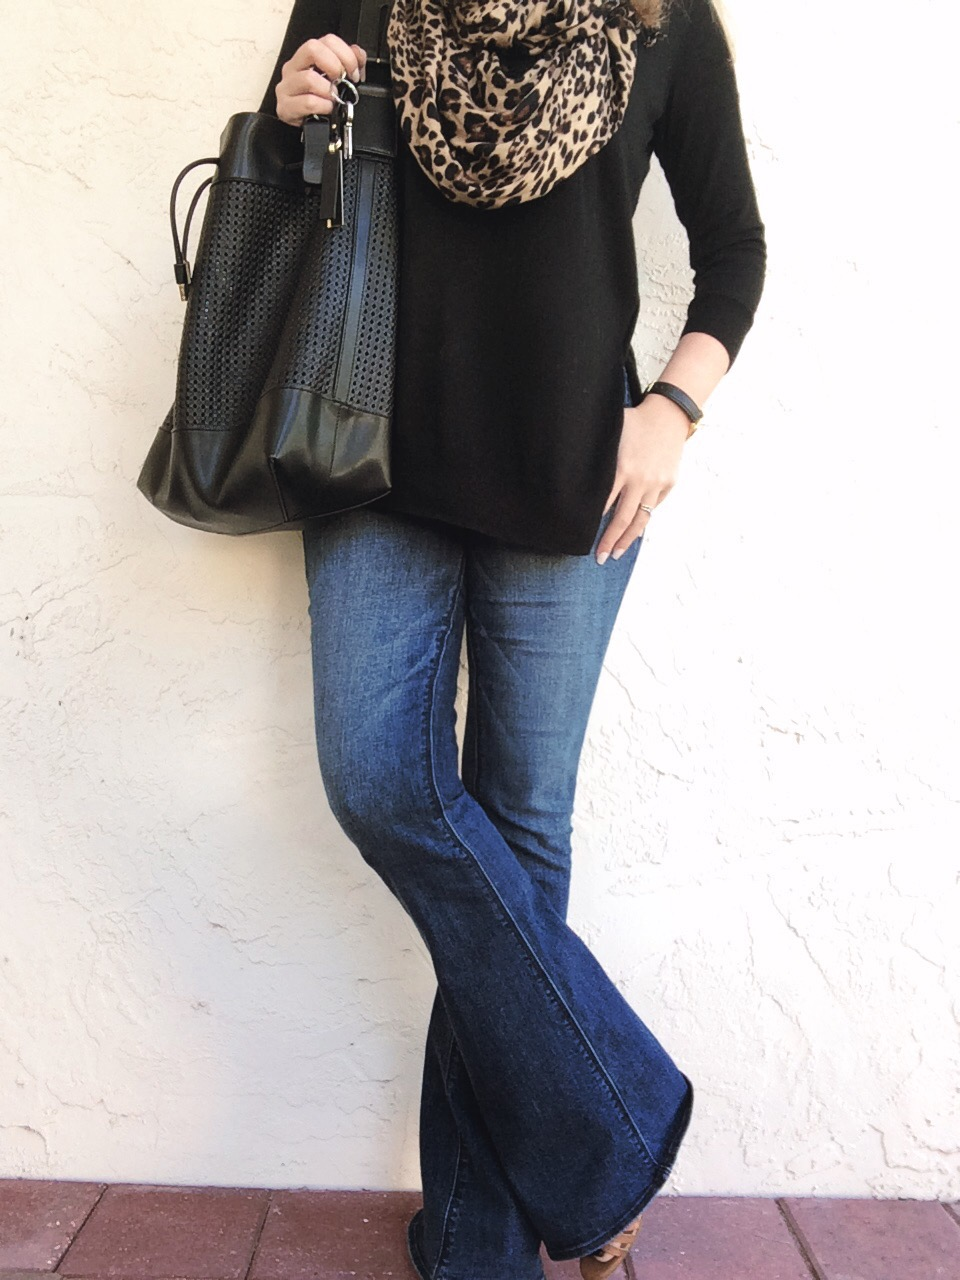 A Pretty Penny | AE Hi-Rise Artist Jeans and Leopard Scarf